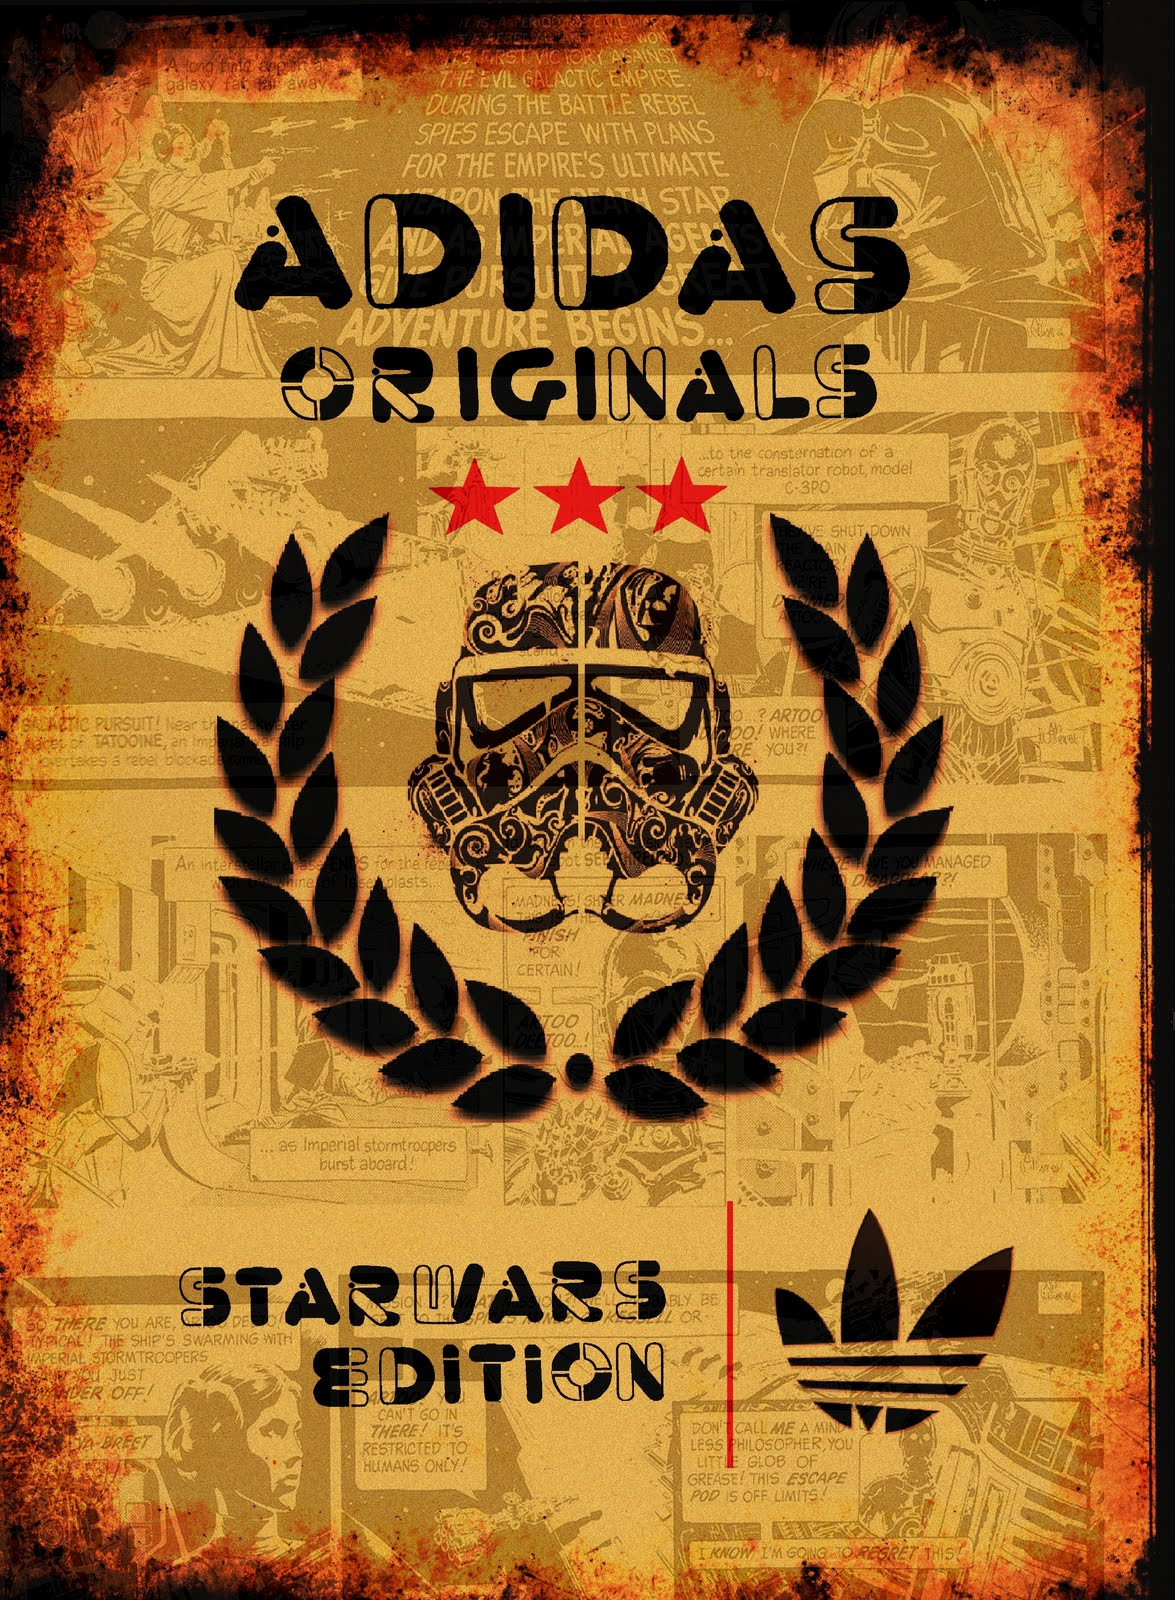 star wars posters  adidas